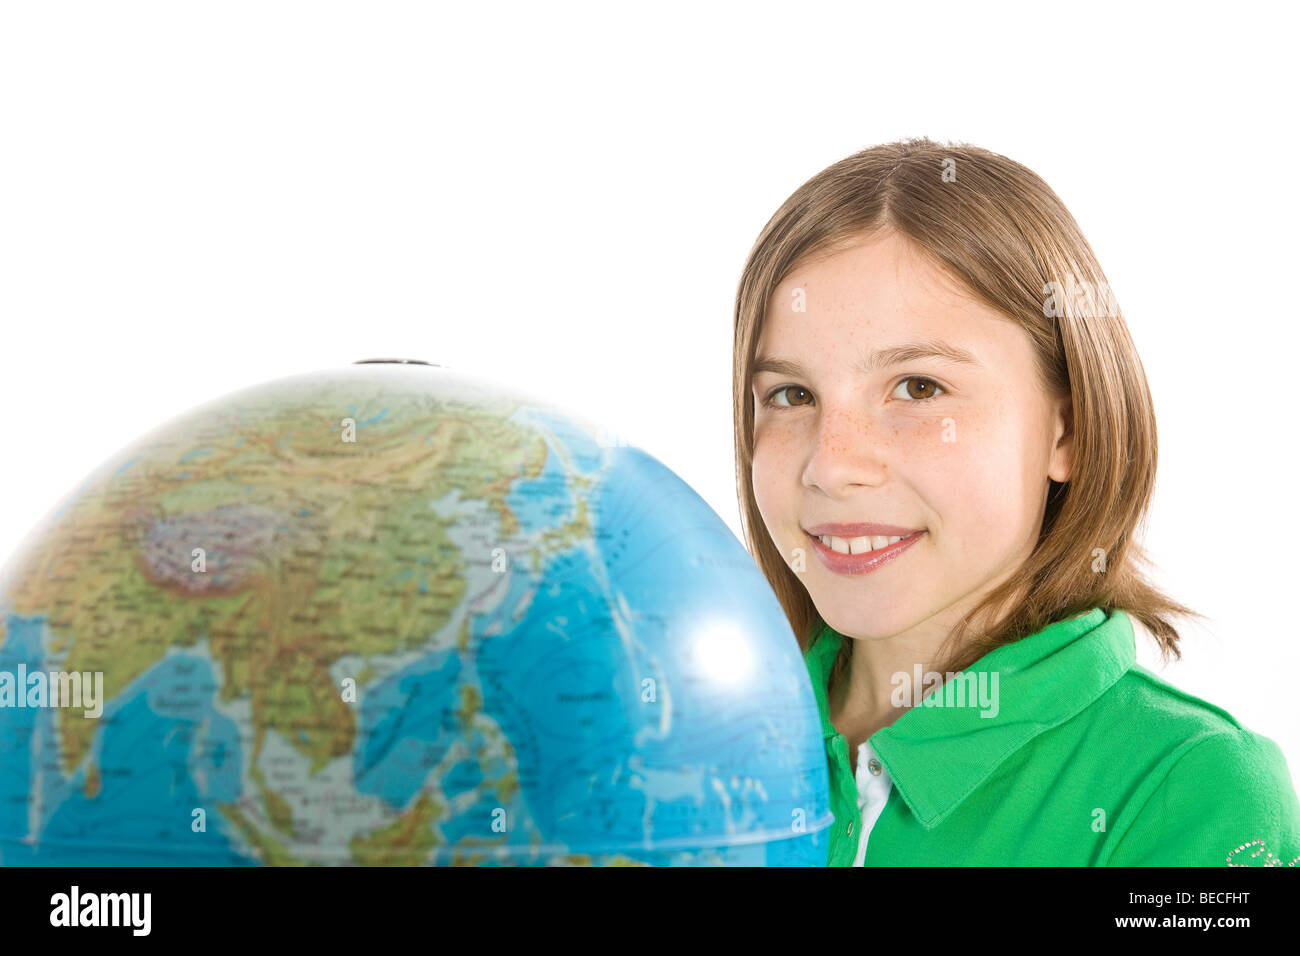 A girl and a globe - Stock Image